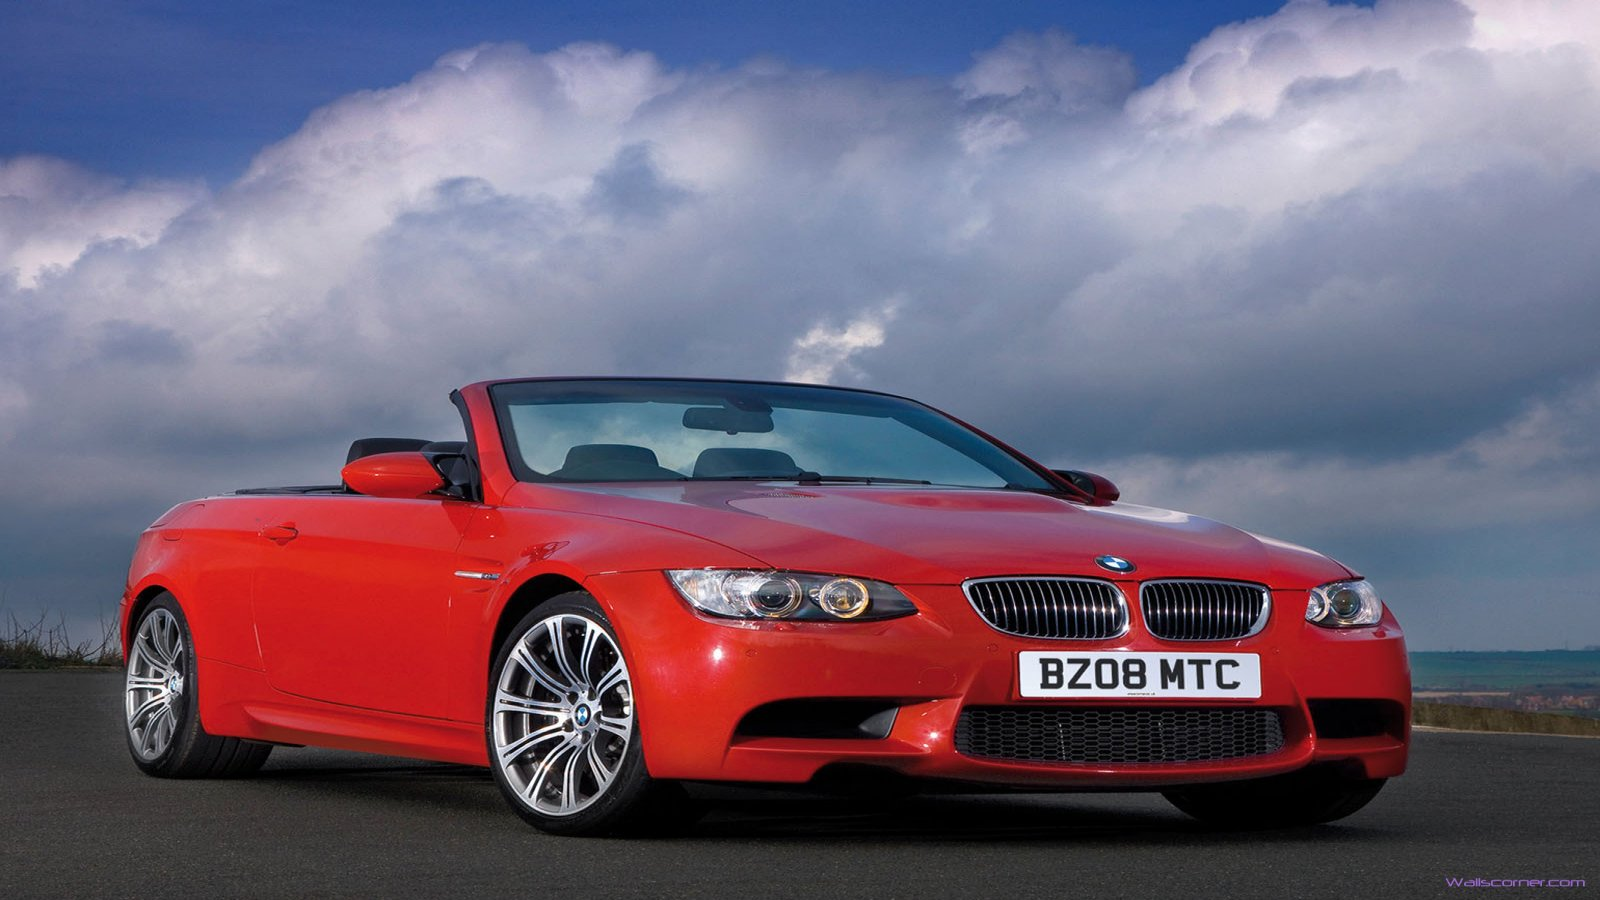 2018 BMW M3 Convertible UK Version photo - 1